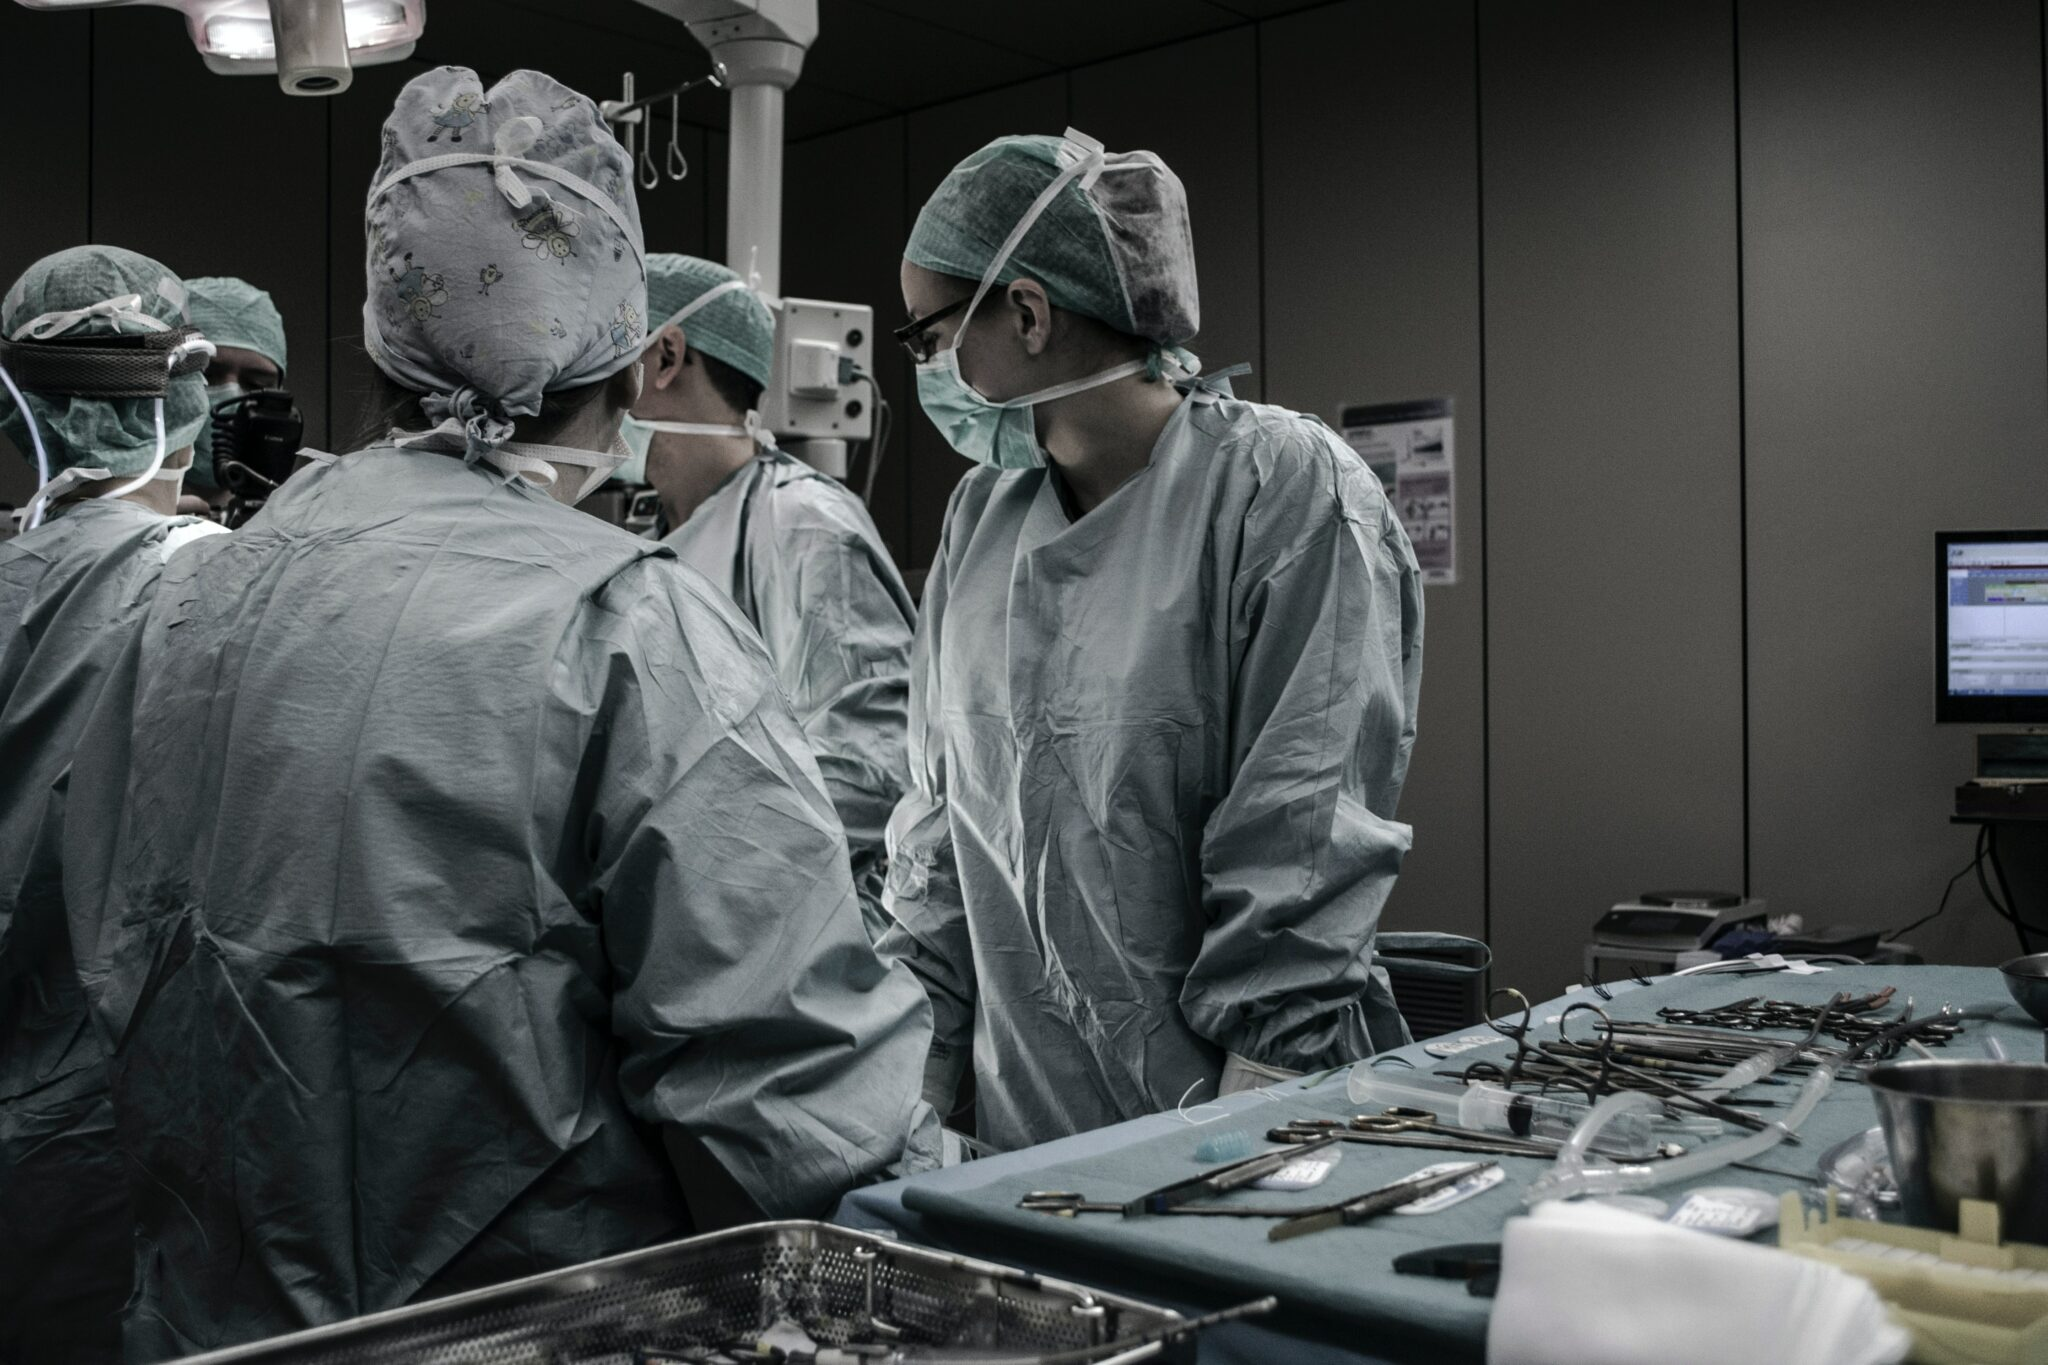 What Damages Medical Equipment?